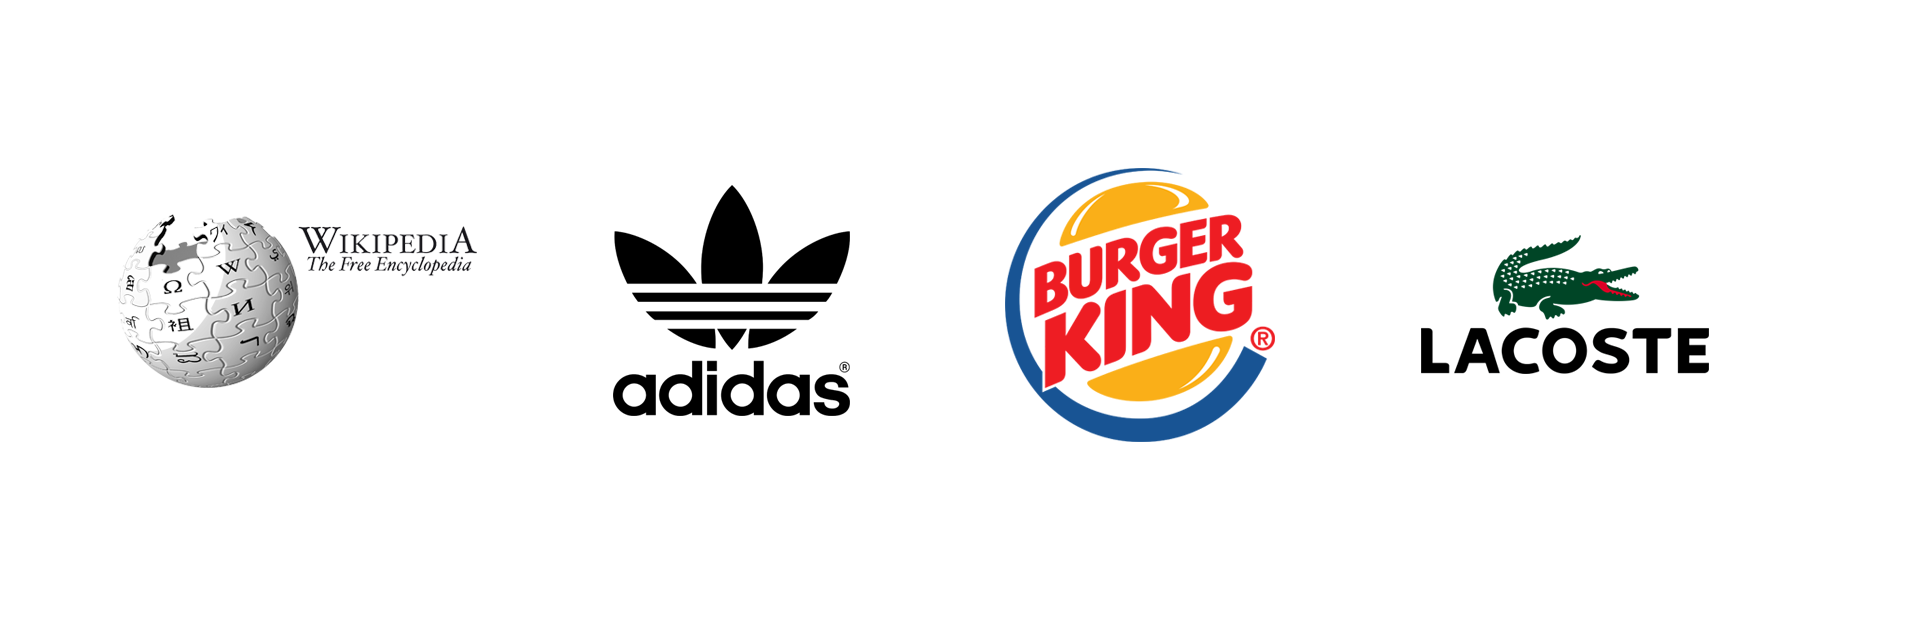 Combined Mark, Wikipedia, Adidas, Burger King, Lacoste